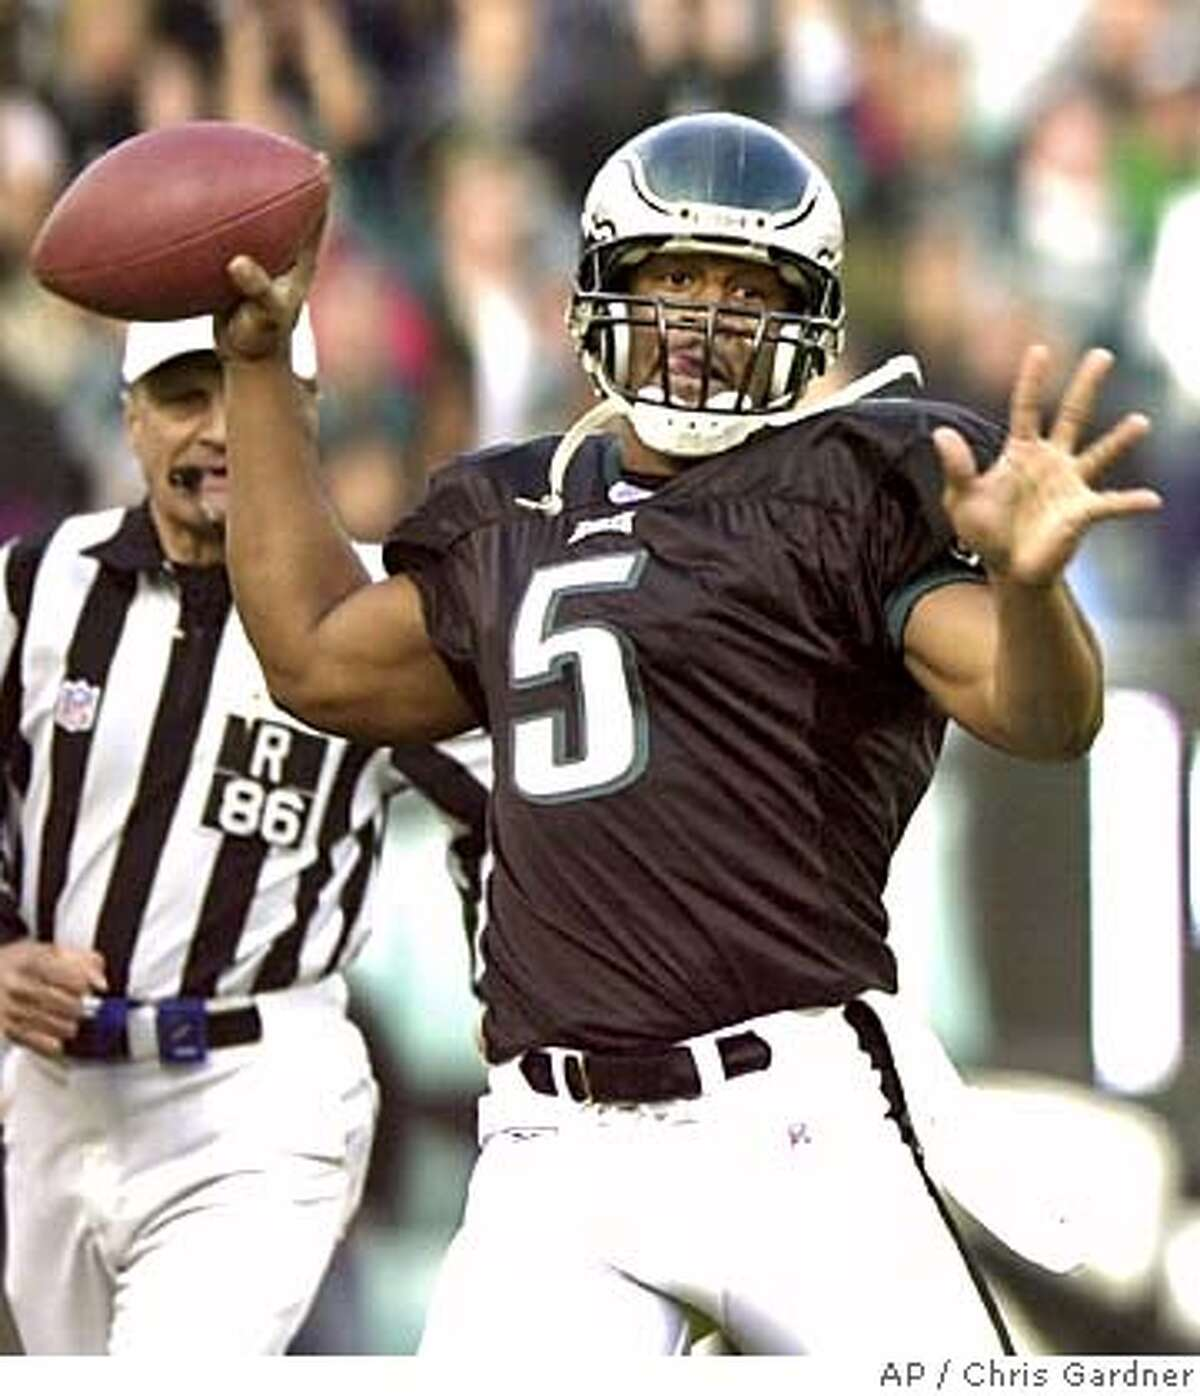 Philadelphia Eagles quarterback Donovan McNabb throws a pass to wide reciever Freddy Mitchell during the second quarter against the New York Giants, Sunday, Nov. 16, 2003, in Philadelphia. The Eagles won 28-10. (AP Photo/Chris Gardner) Photo caption 1068854400APPhiladelphia Eagles quarterback Donovan McNabb throws a pass to wide reciever Freddy Mitchell during the second quarter against the New York Giants, Sunday, Nov. 16, 2003, in Philadelphia. The Eagles won 28-10. (AP Photo-Chris Gardner) Photo caption 1068854400APPhiladelphia Eagles quarterback Donovan McNabb throws a pass to wide reciever Freddy Mitchell during the second quarter against the New York Giants, Sunday, Nov. 16, 2003, in Philadelphia. The Eagles won 28-10. (AP Photo-Chris Gardner)